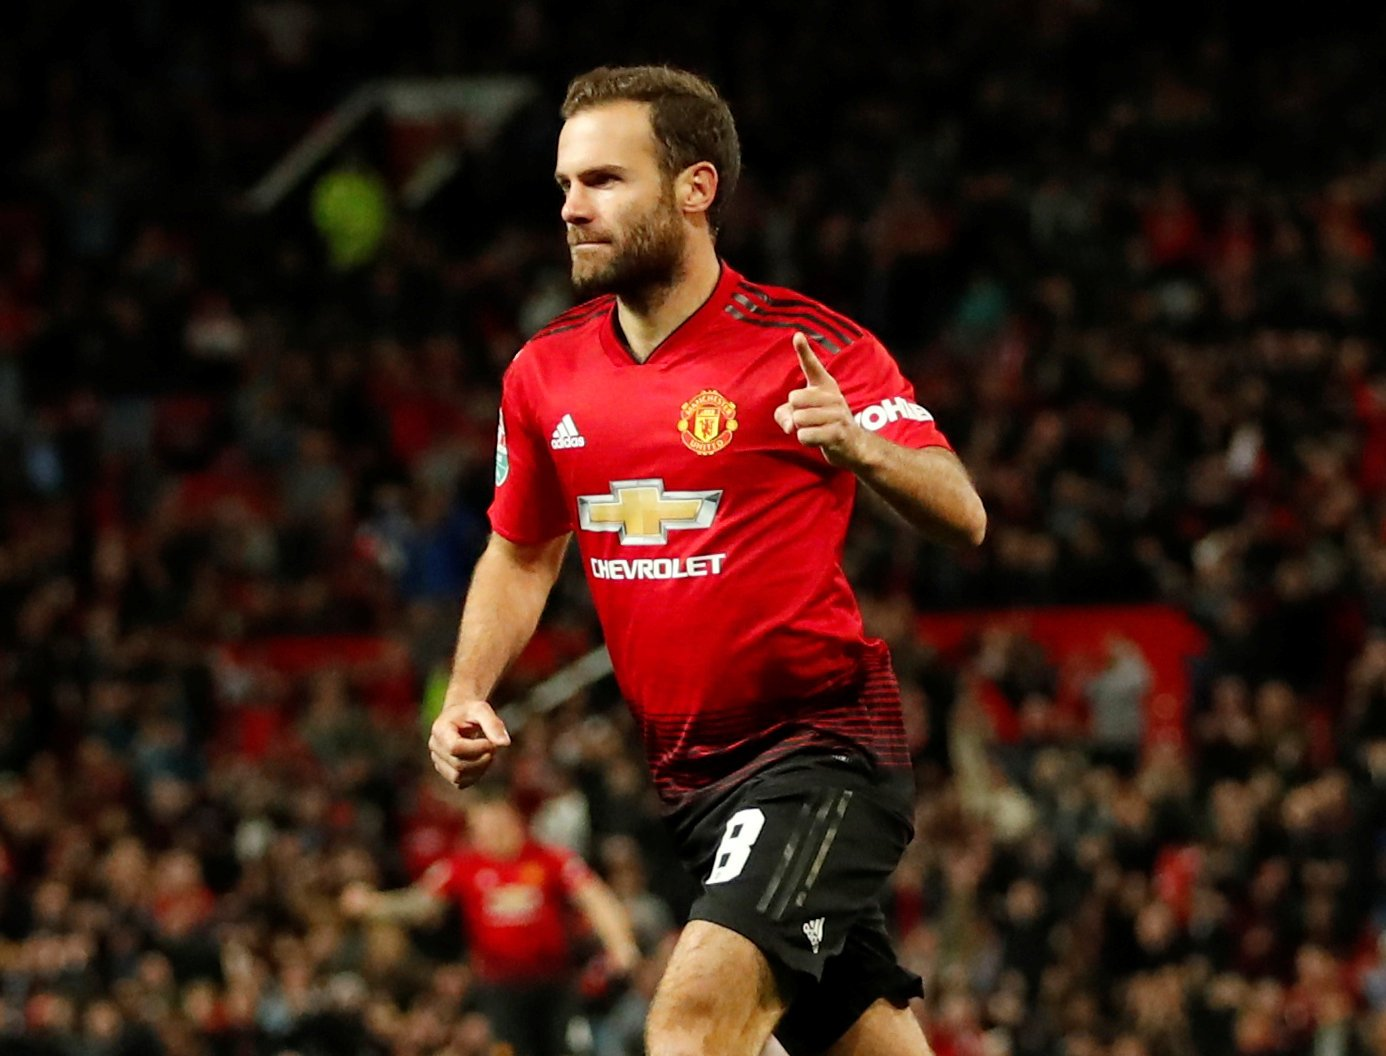 Man Utd fans have issued a demand to Jose Mourinho regarding Juan Mata